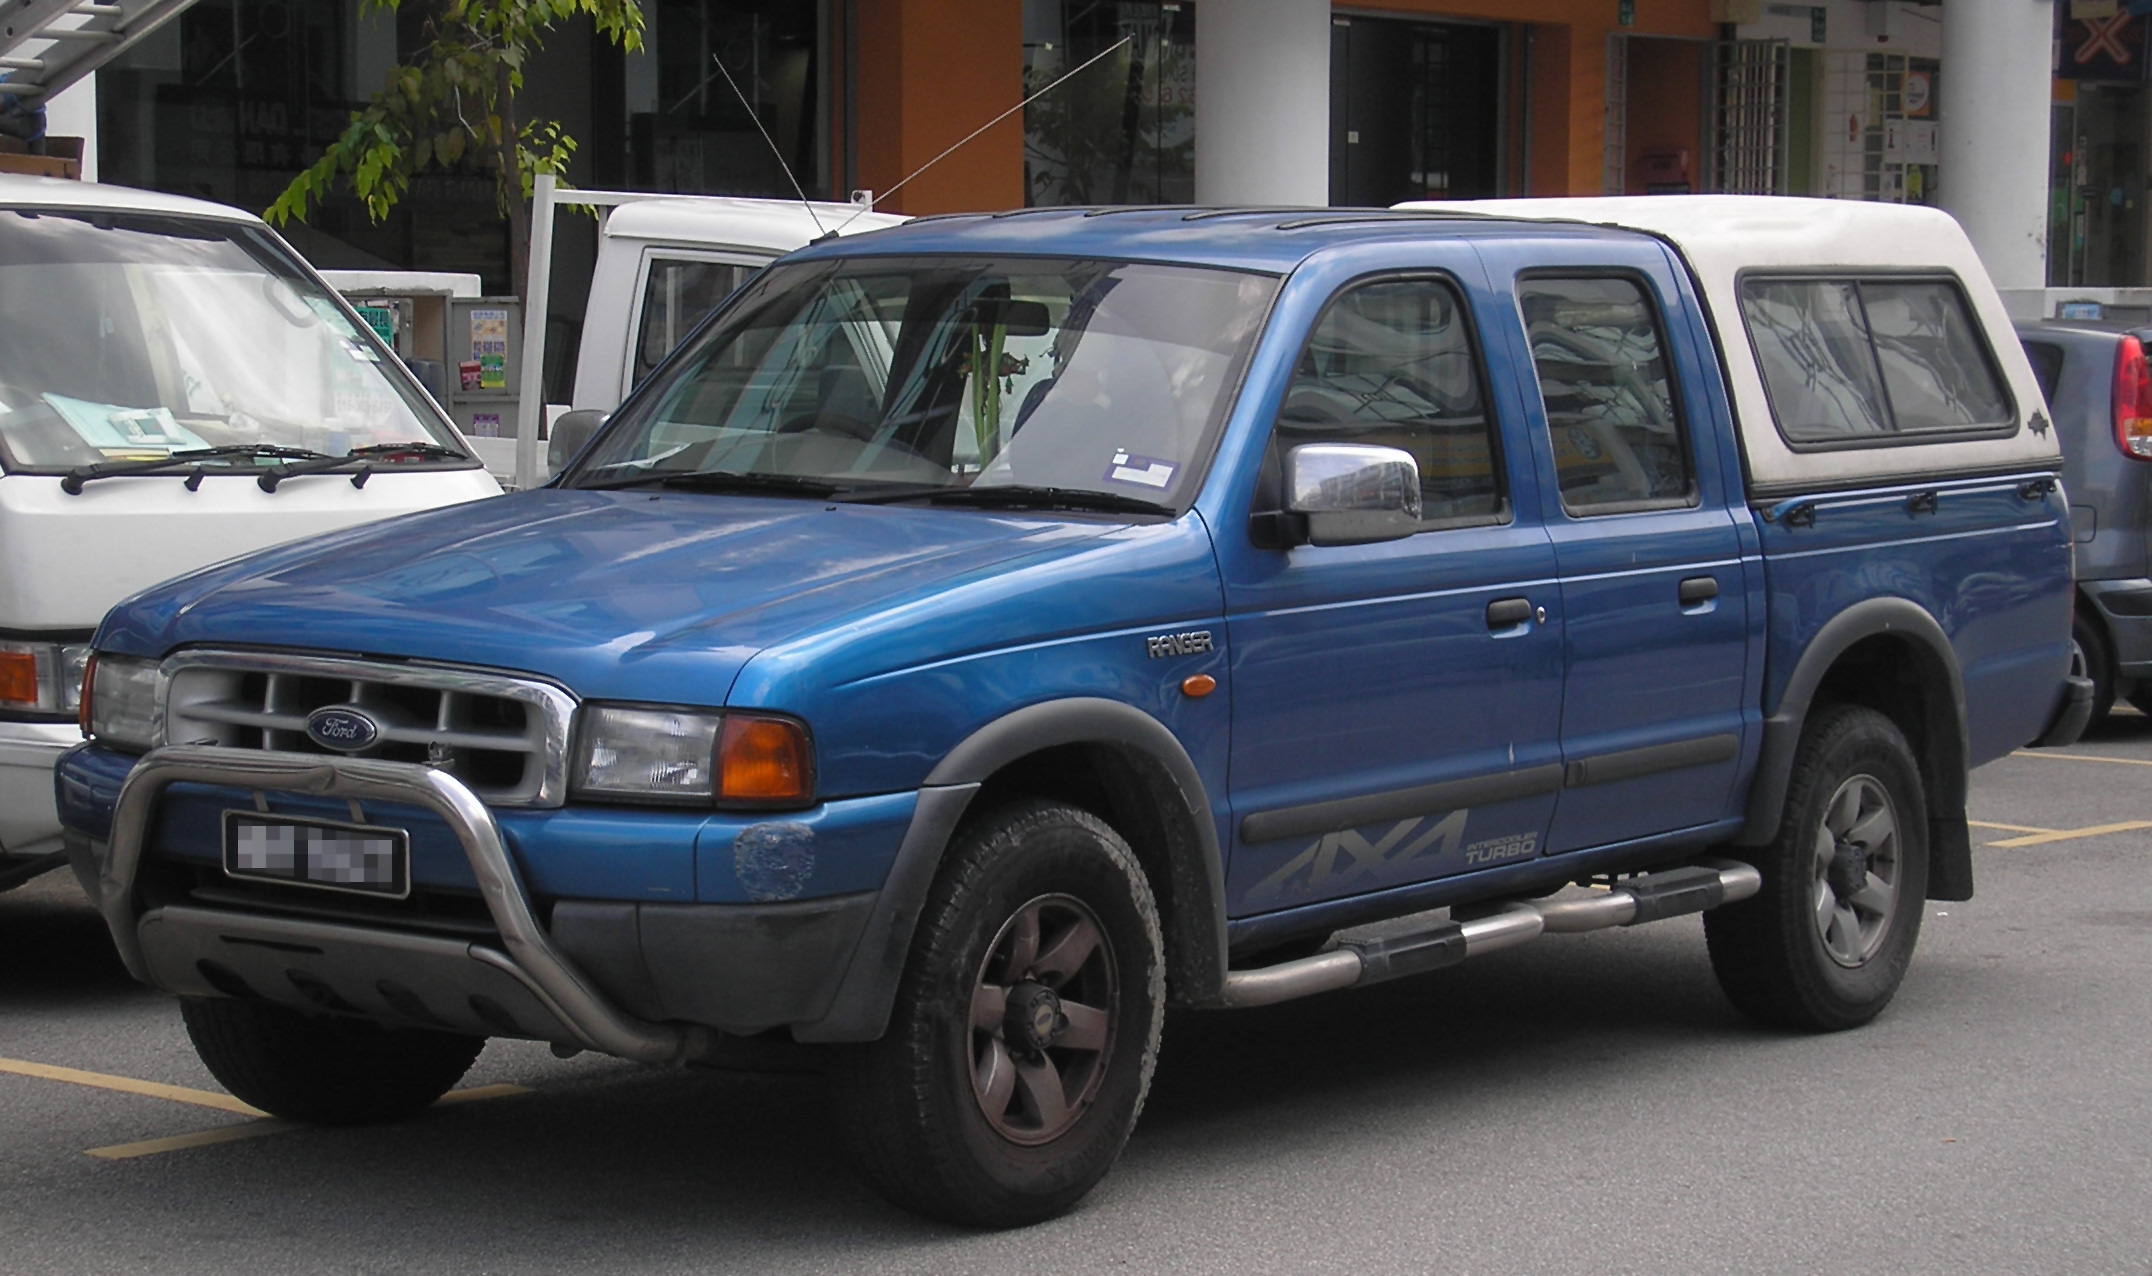 File Ford Ranger  Southeast Asian  first generation   front   Serdang further Larry Larson Bate O Recorde Mundial   Ft500 6 1s 350km H News 233 besides Auto4961 moreover Watch moreover 300776969566. on ford ranger bed cover